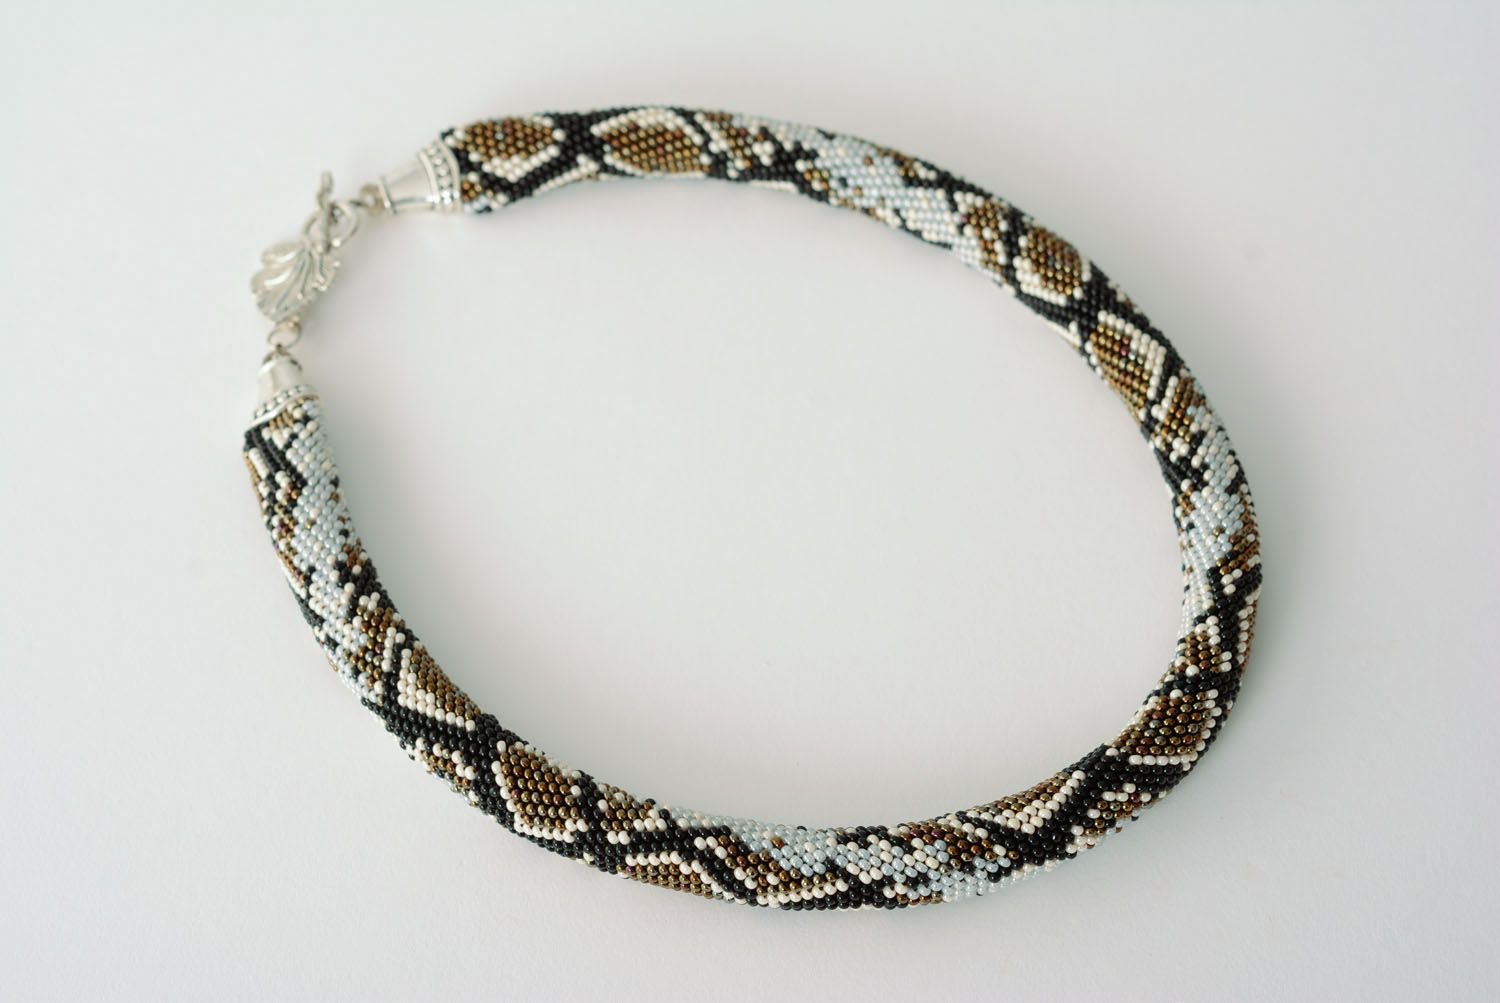 Beaded cord with python skin pattern photo 3